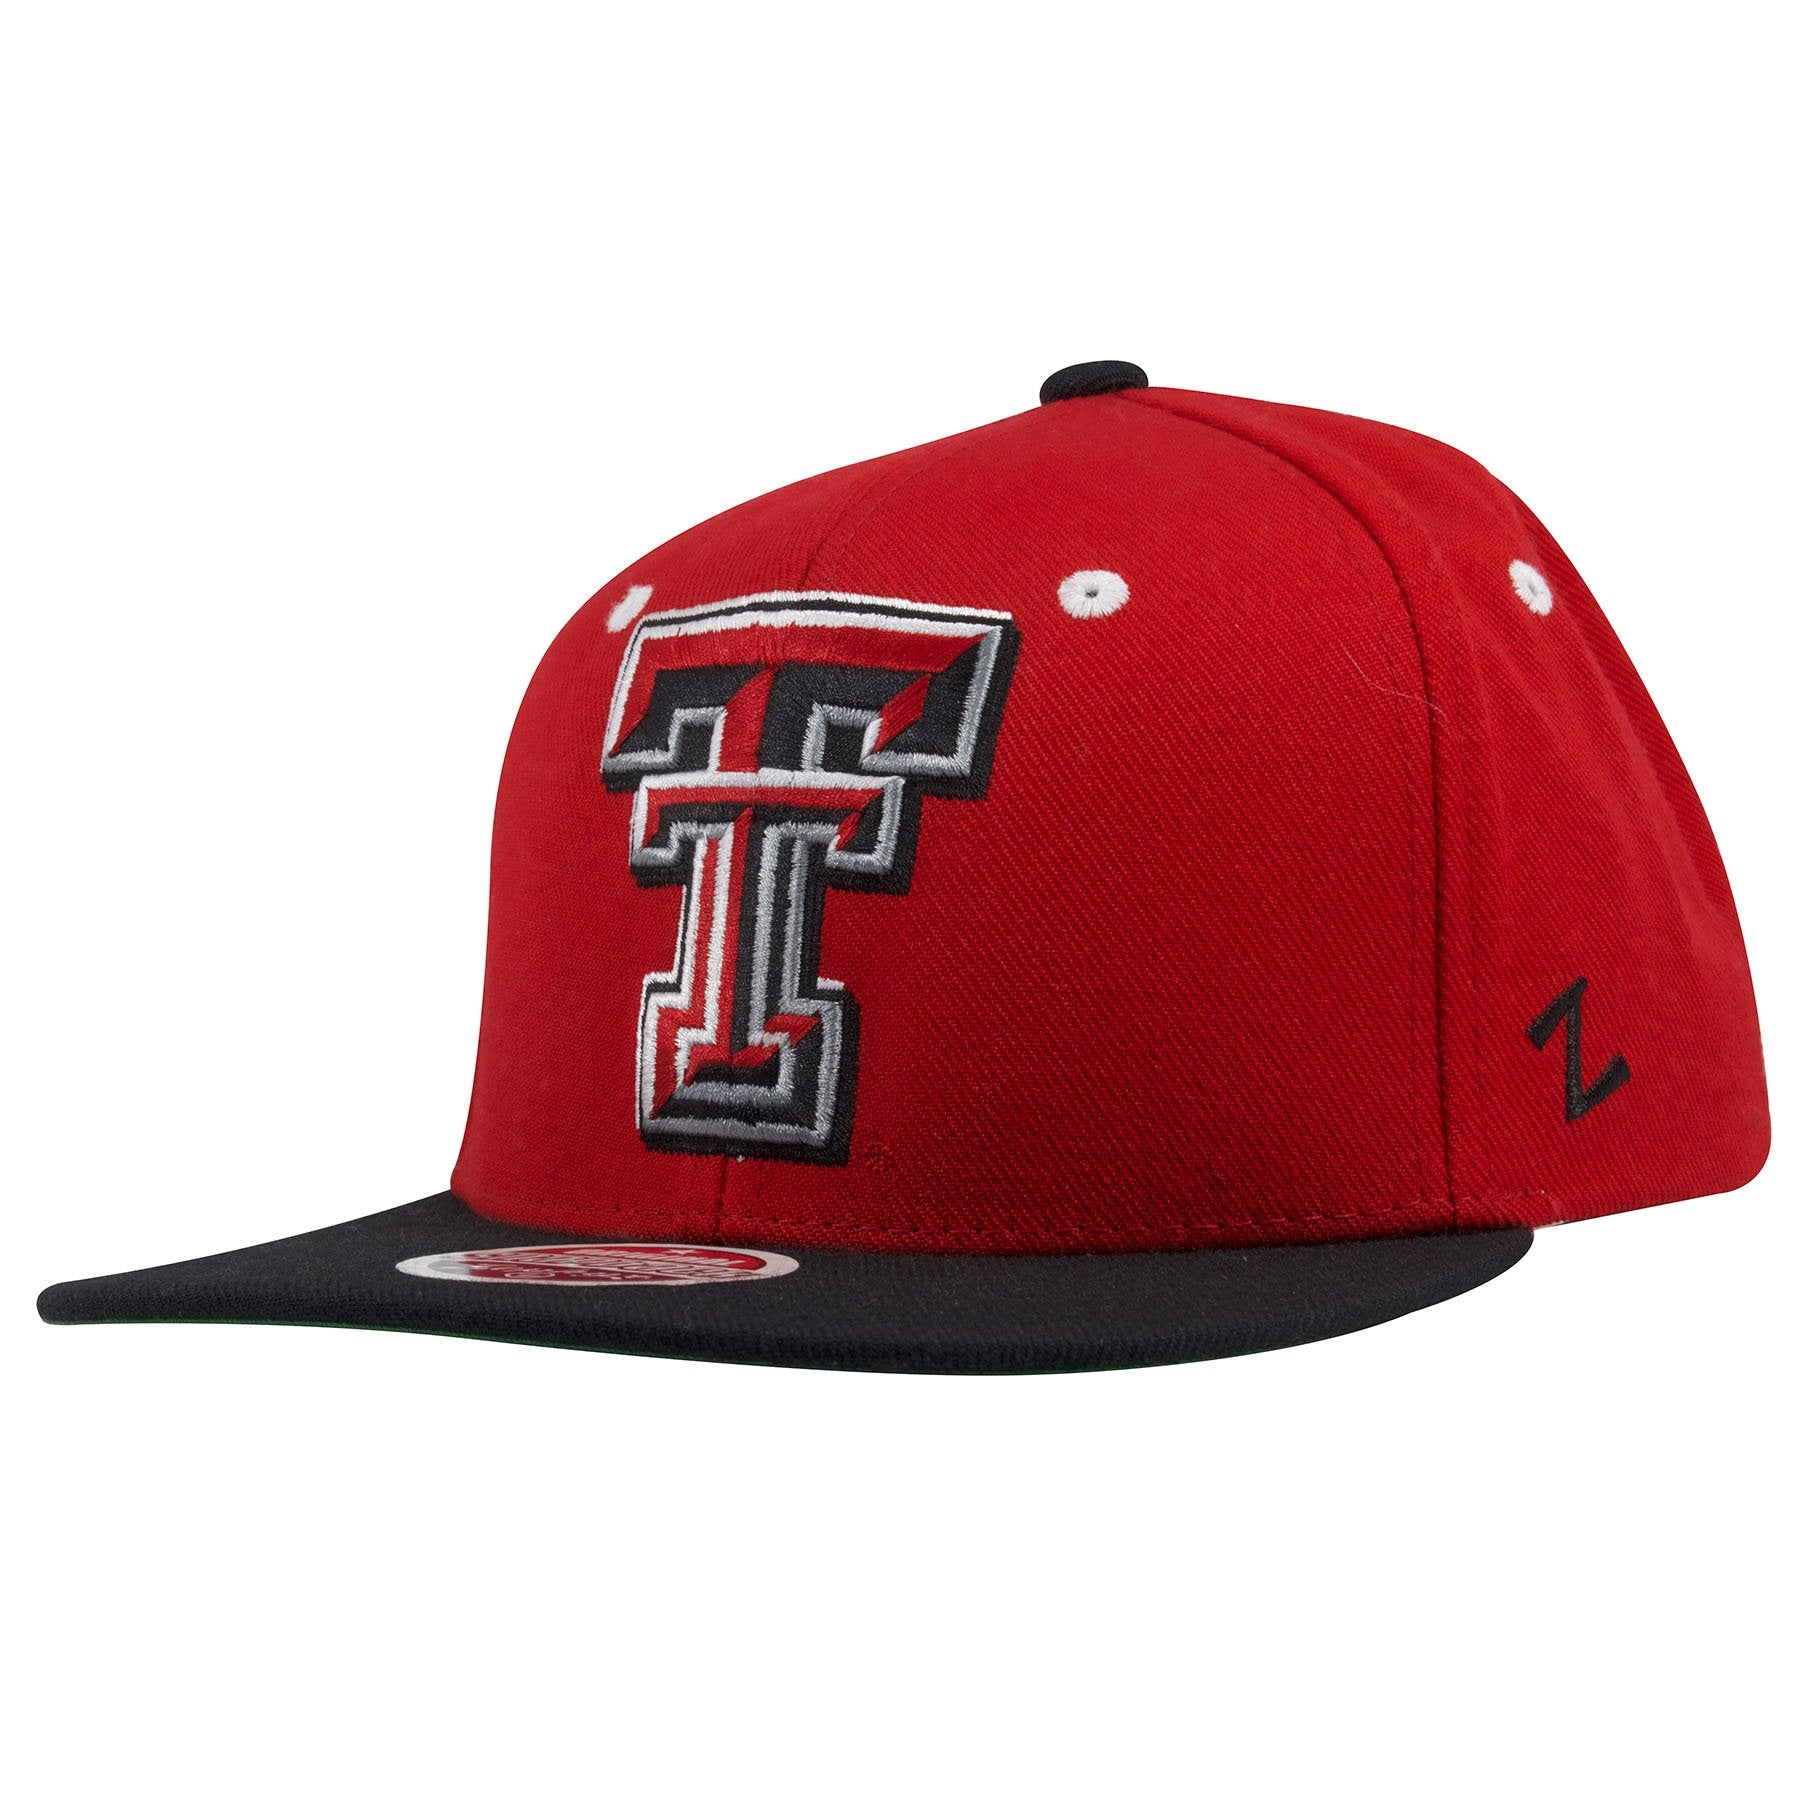 Texas Tech Red Raiders Two Tone Red on Black Snapback Hat